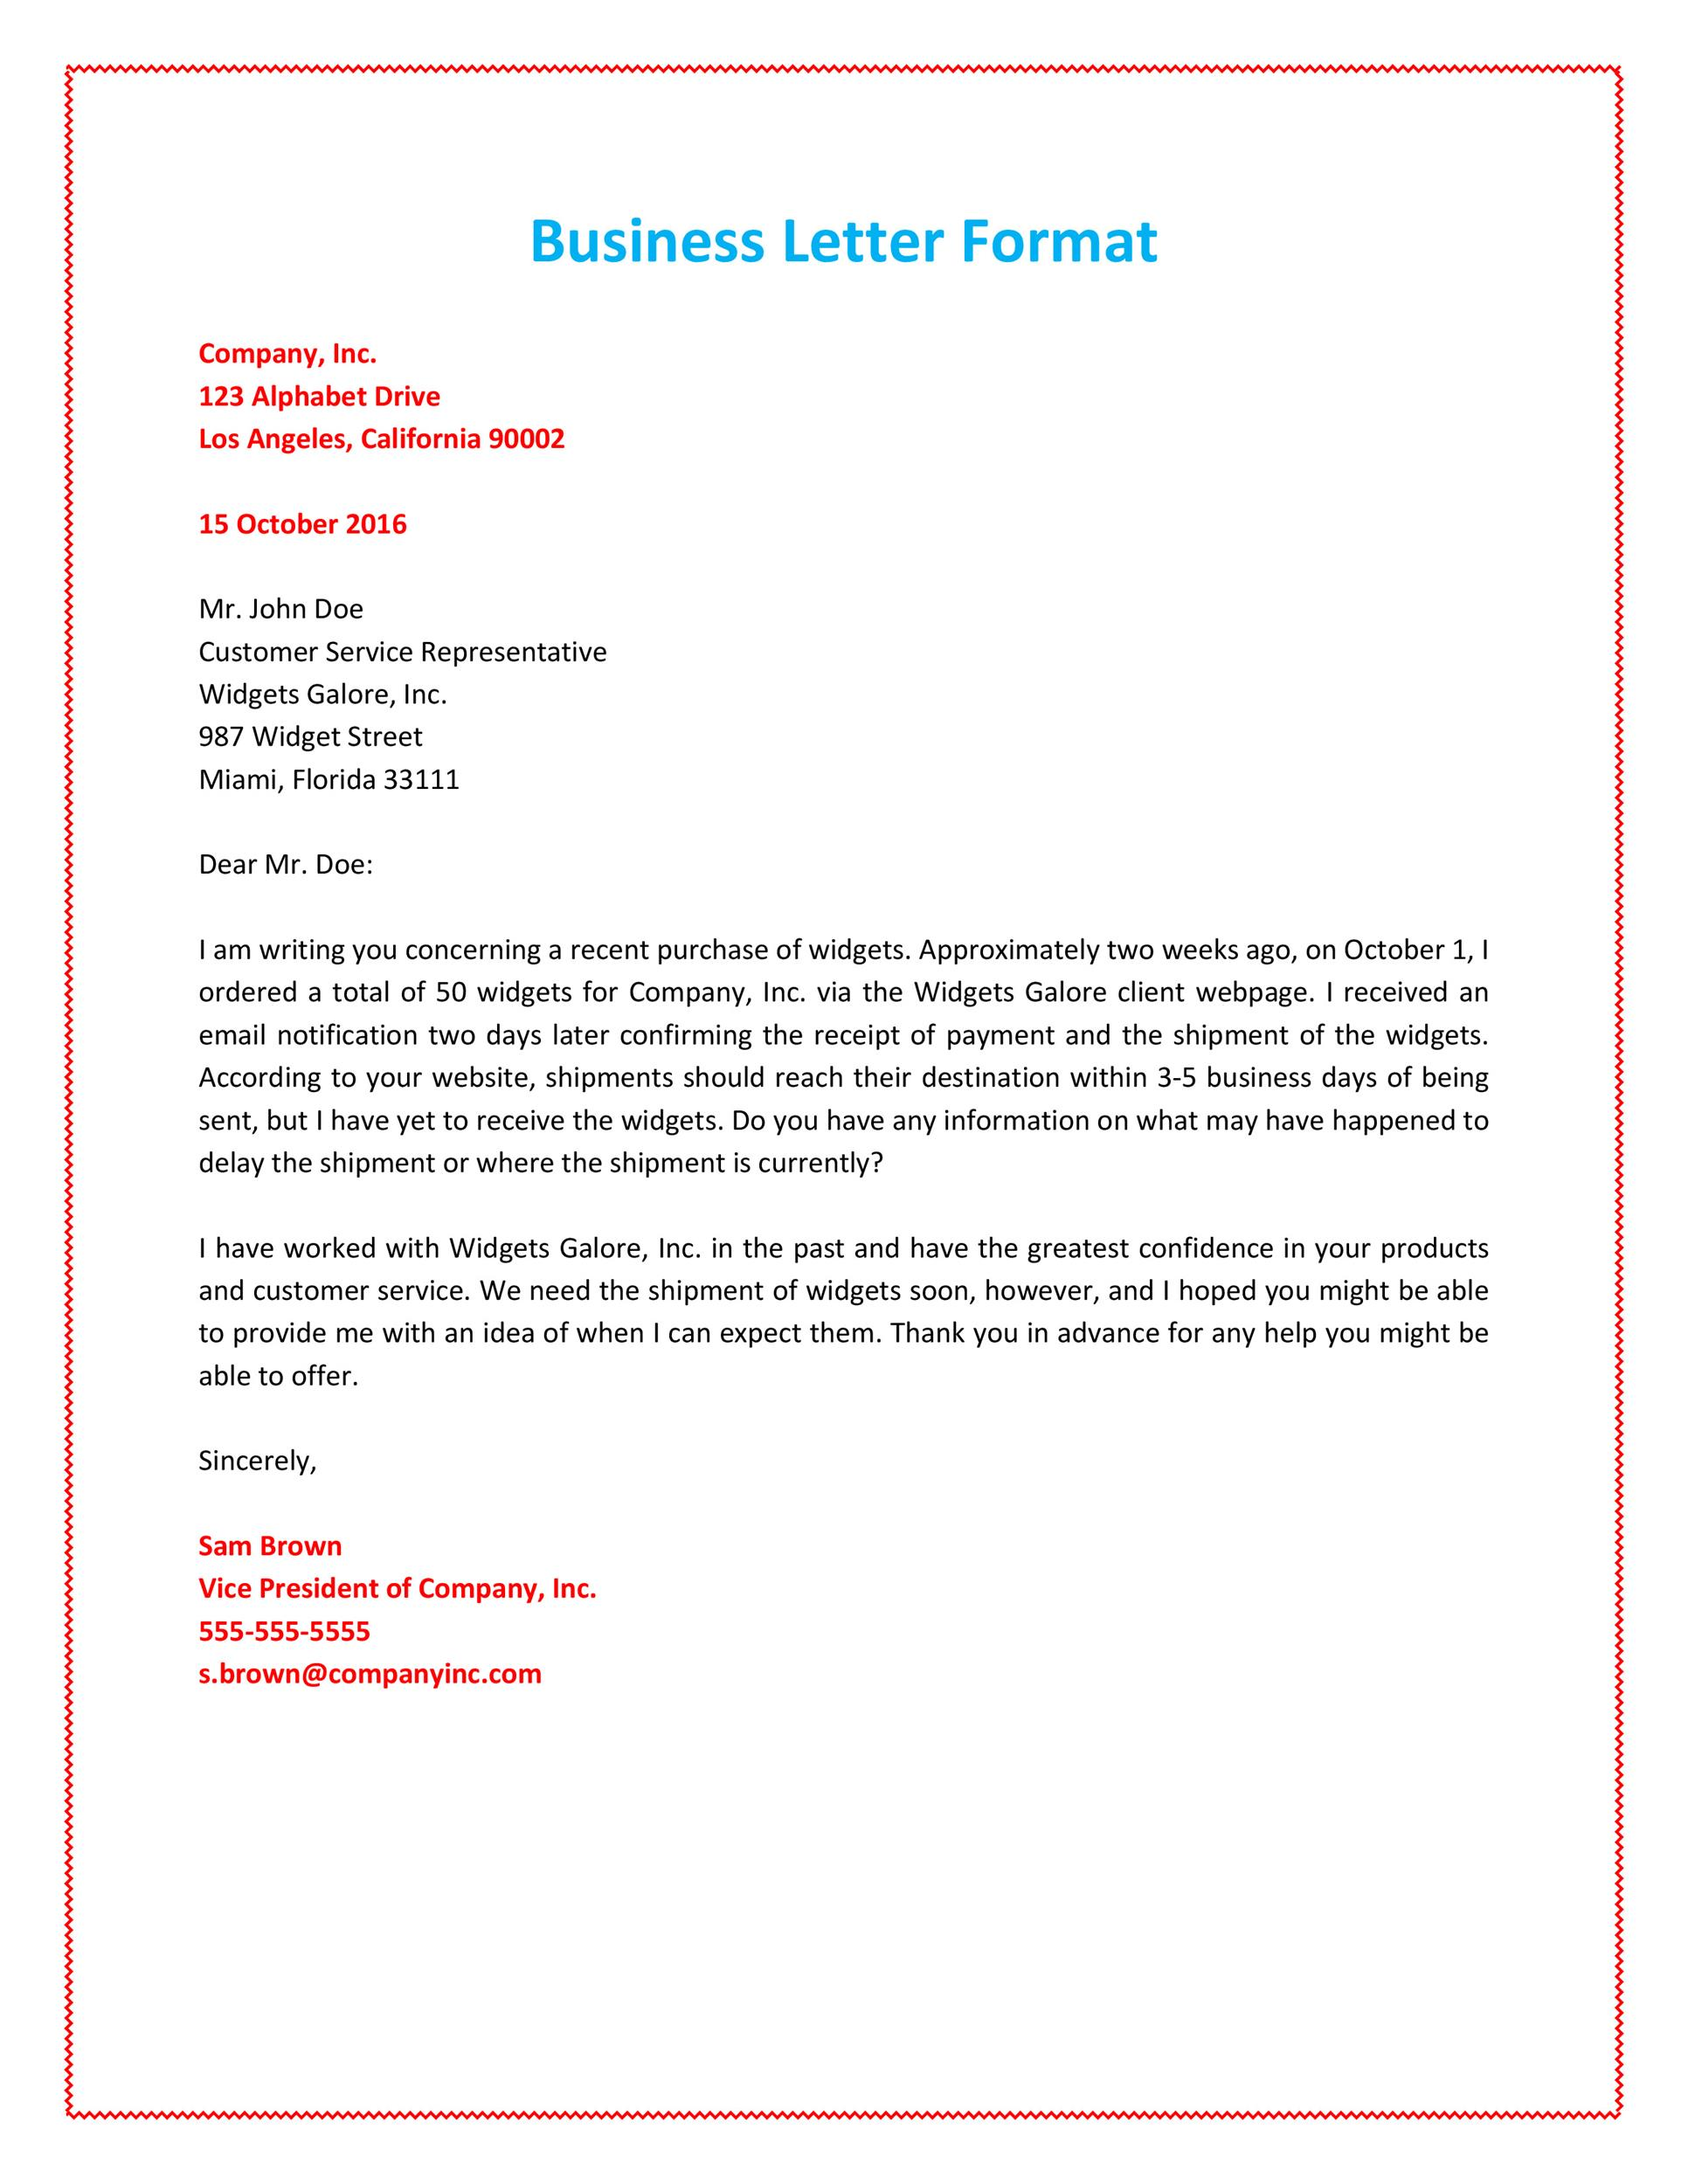 35 formal business letter format templates examples template lab business letter format example free formal business letter 01 spiritdancerdesigns Gallery